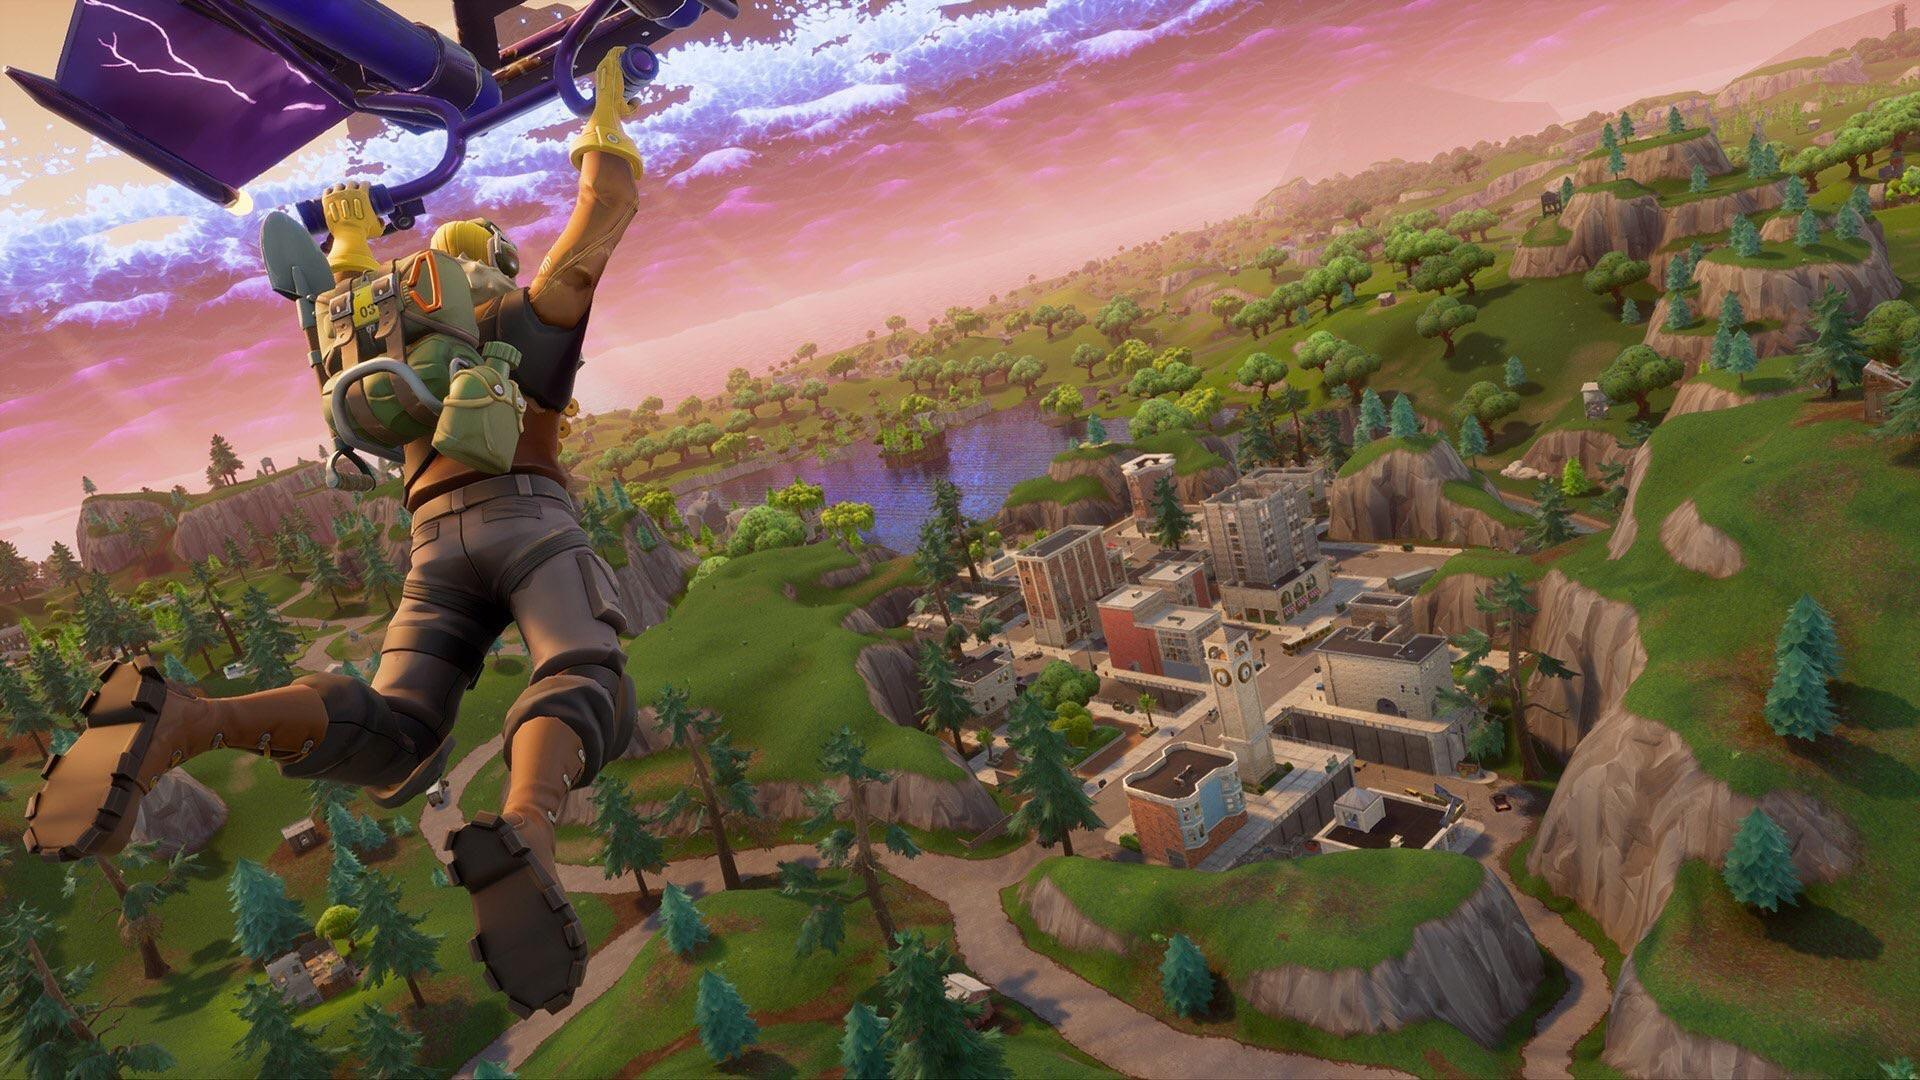 Battle Royale Starter Pack bundle reportedly leaked in Fortnite's